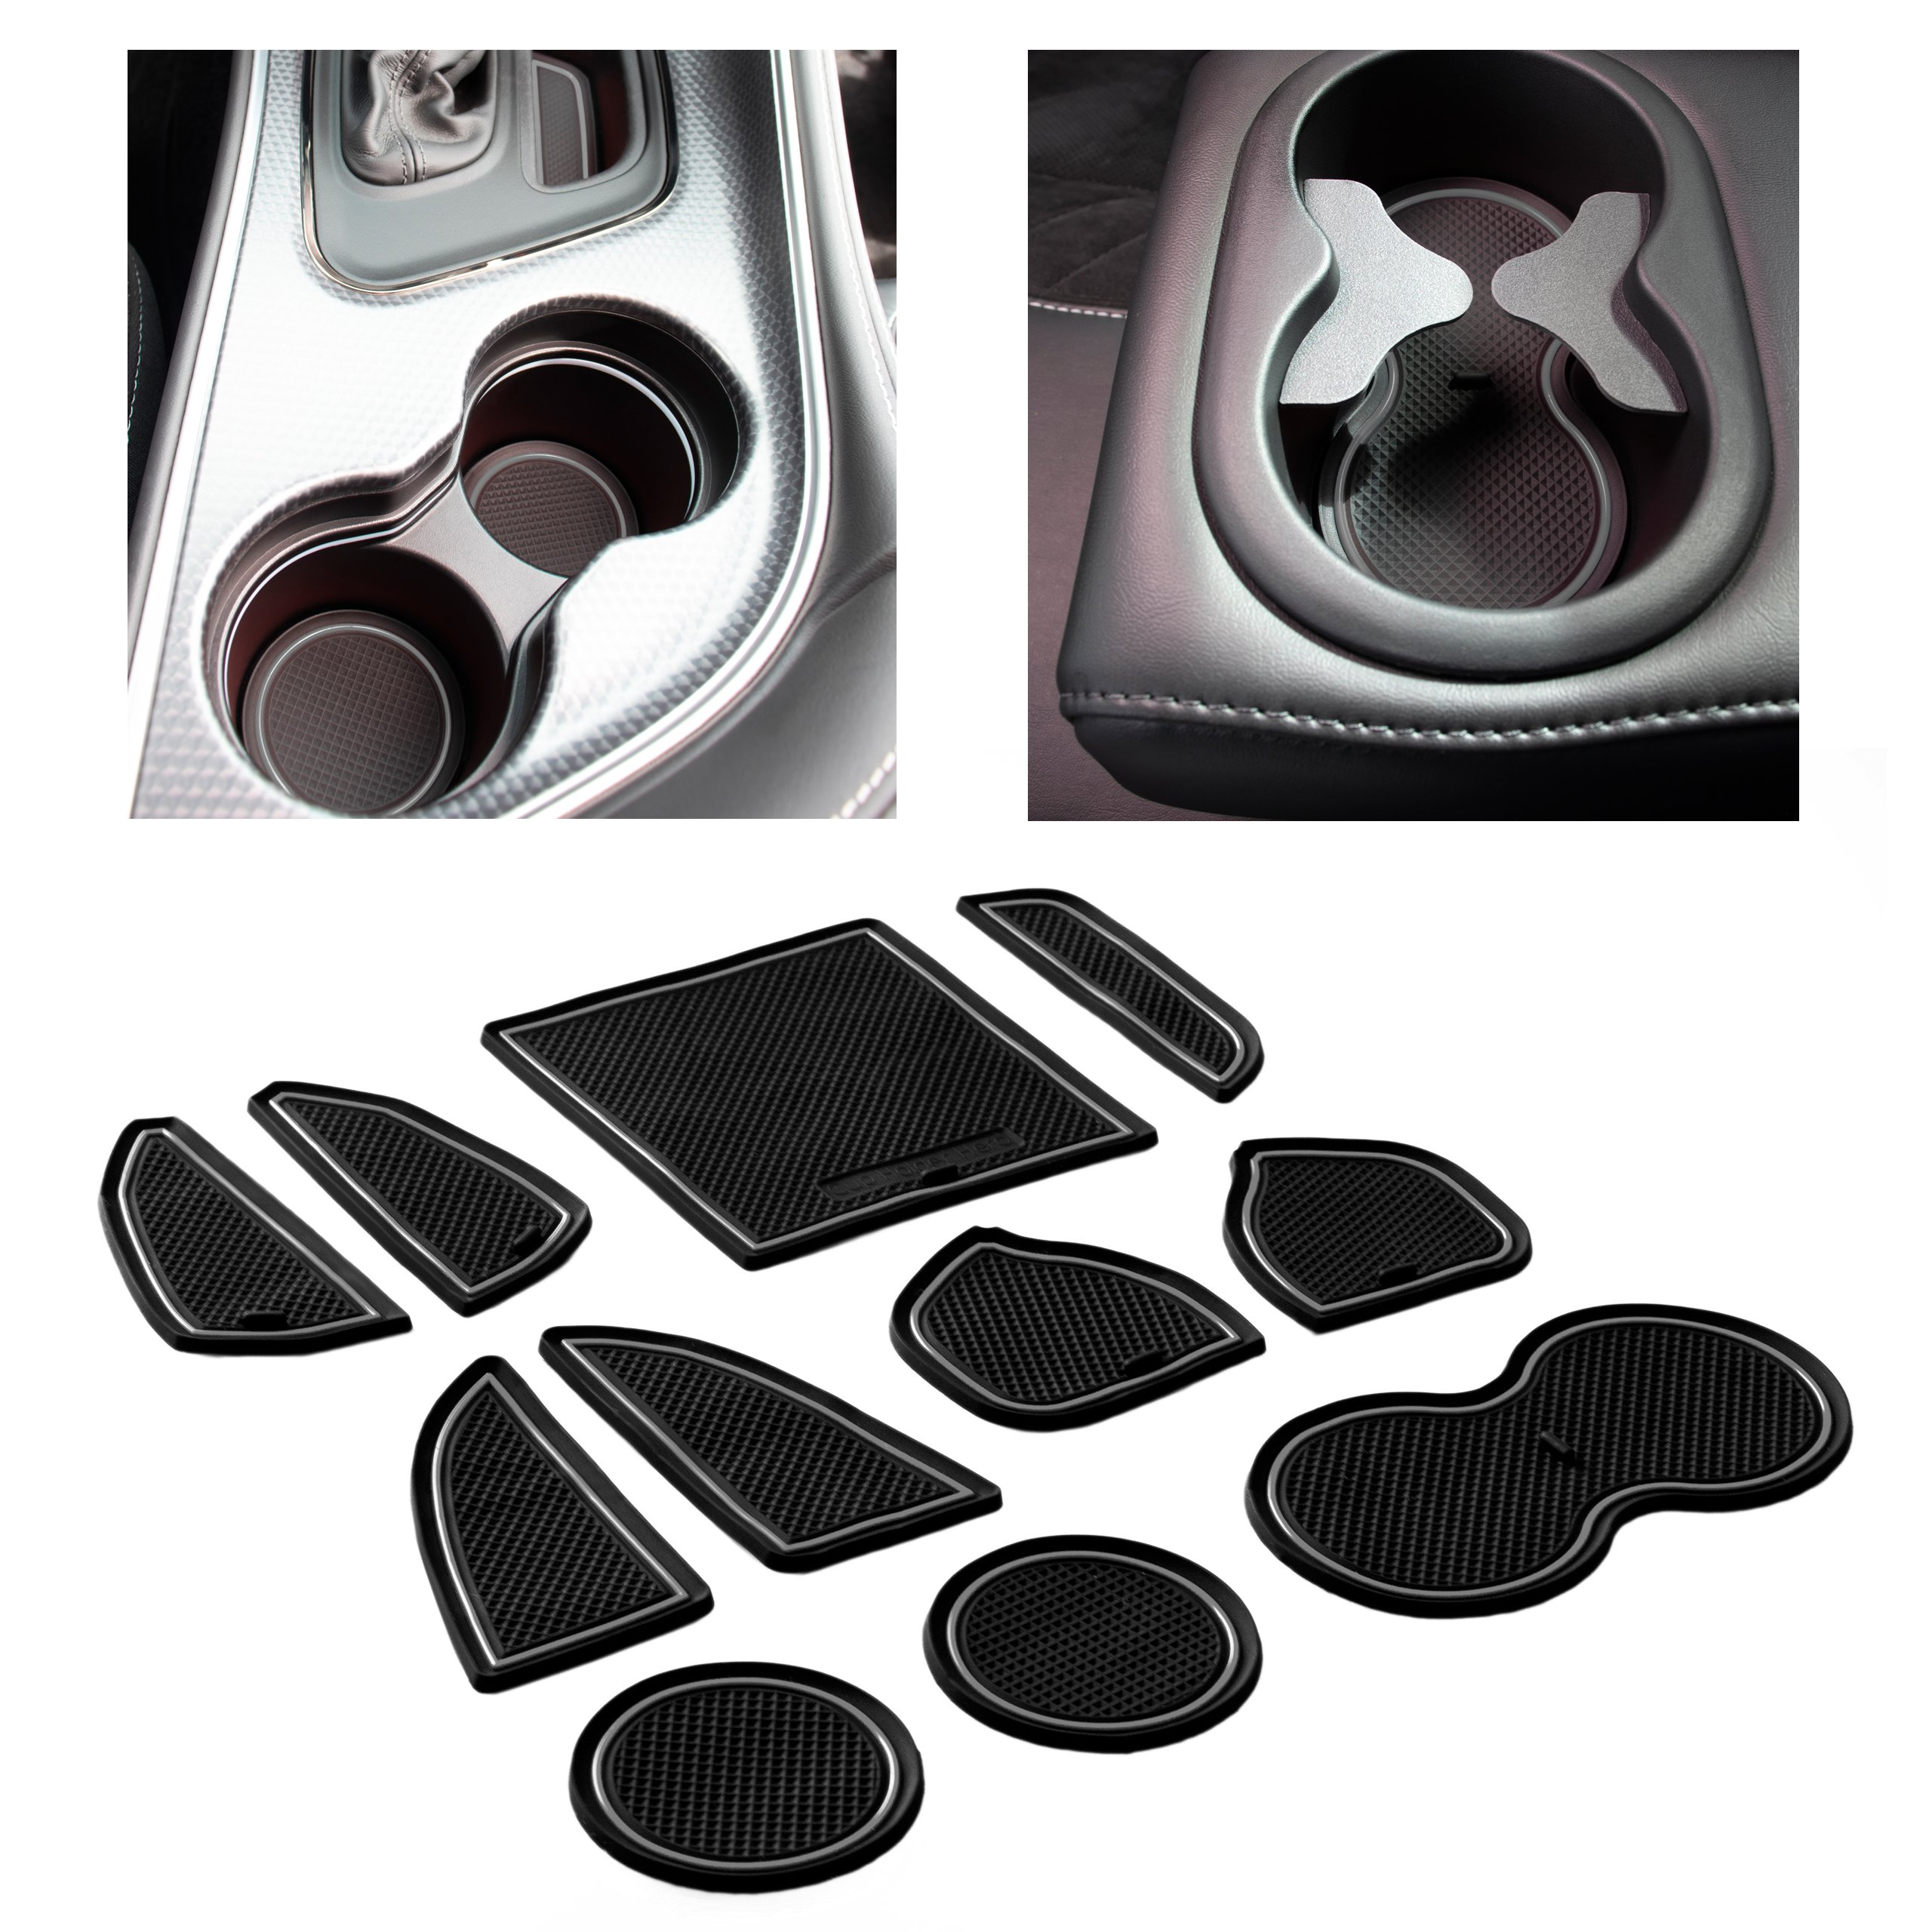 CupHolderHero-Dodge-Challenger-2015-2021-Liners-Accessories thumbnail 13